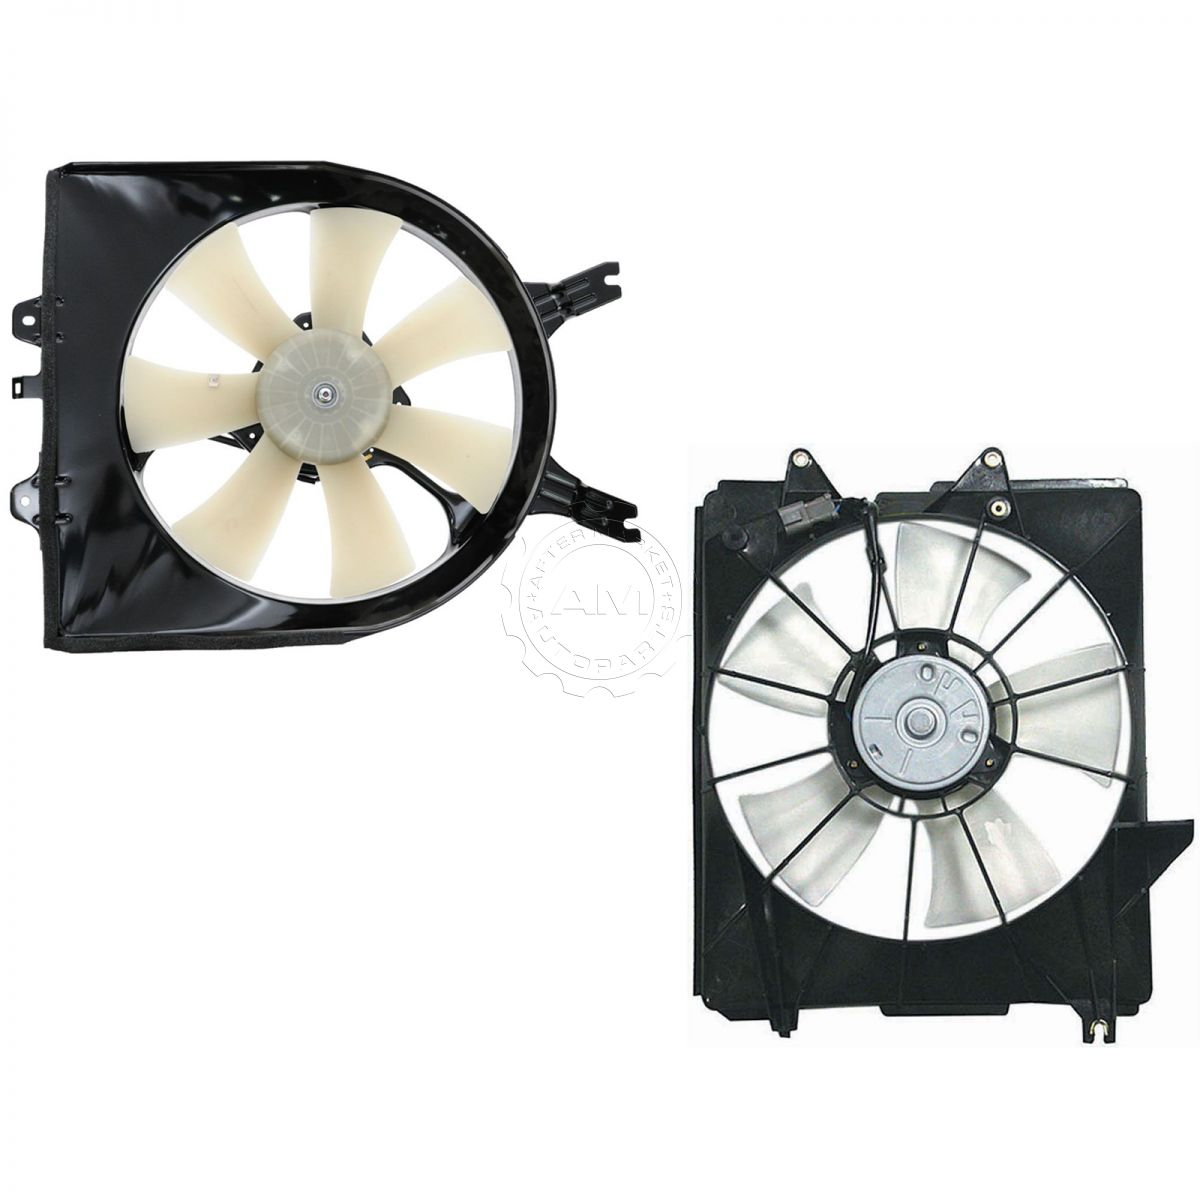 A//C Condenser Cooling Fan For 2007-2008 Honda Fit